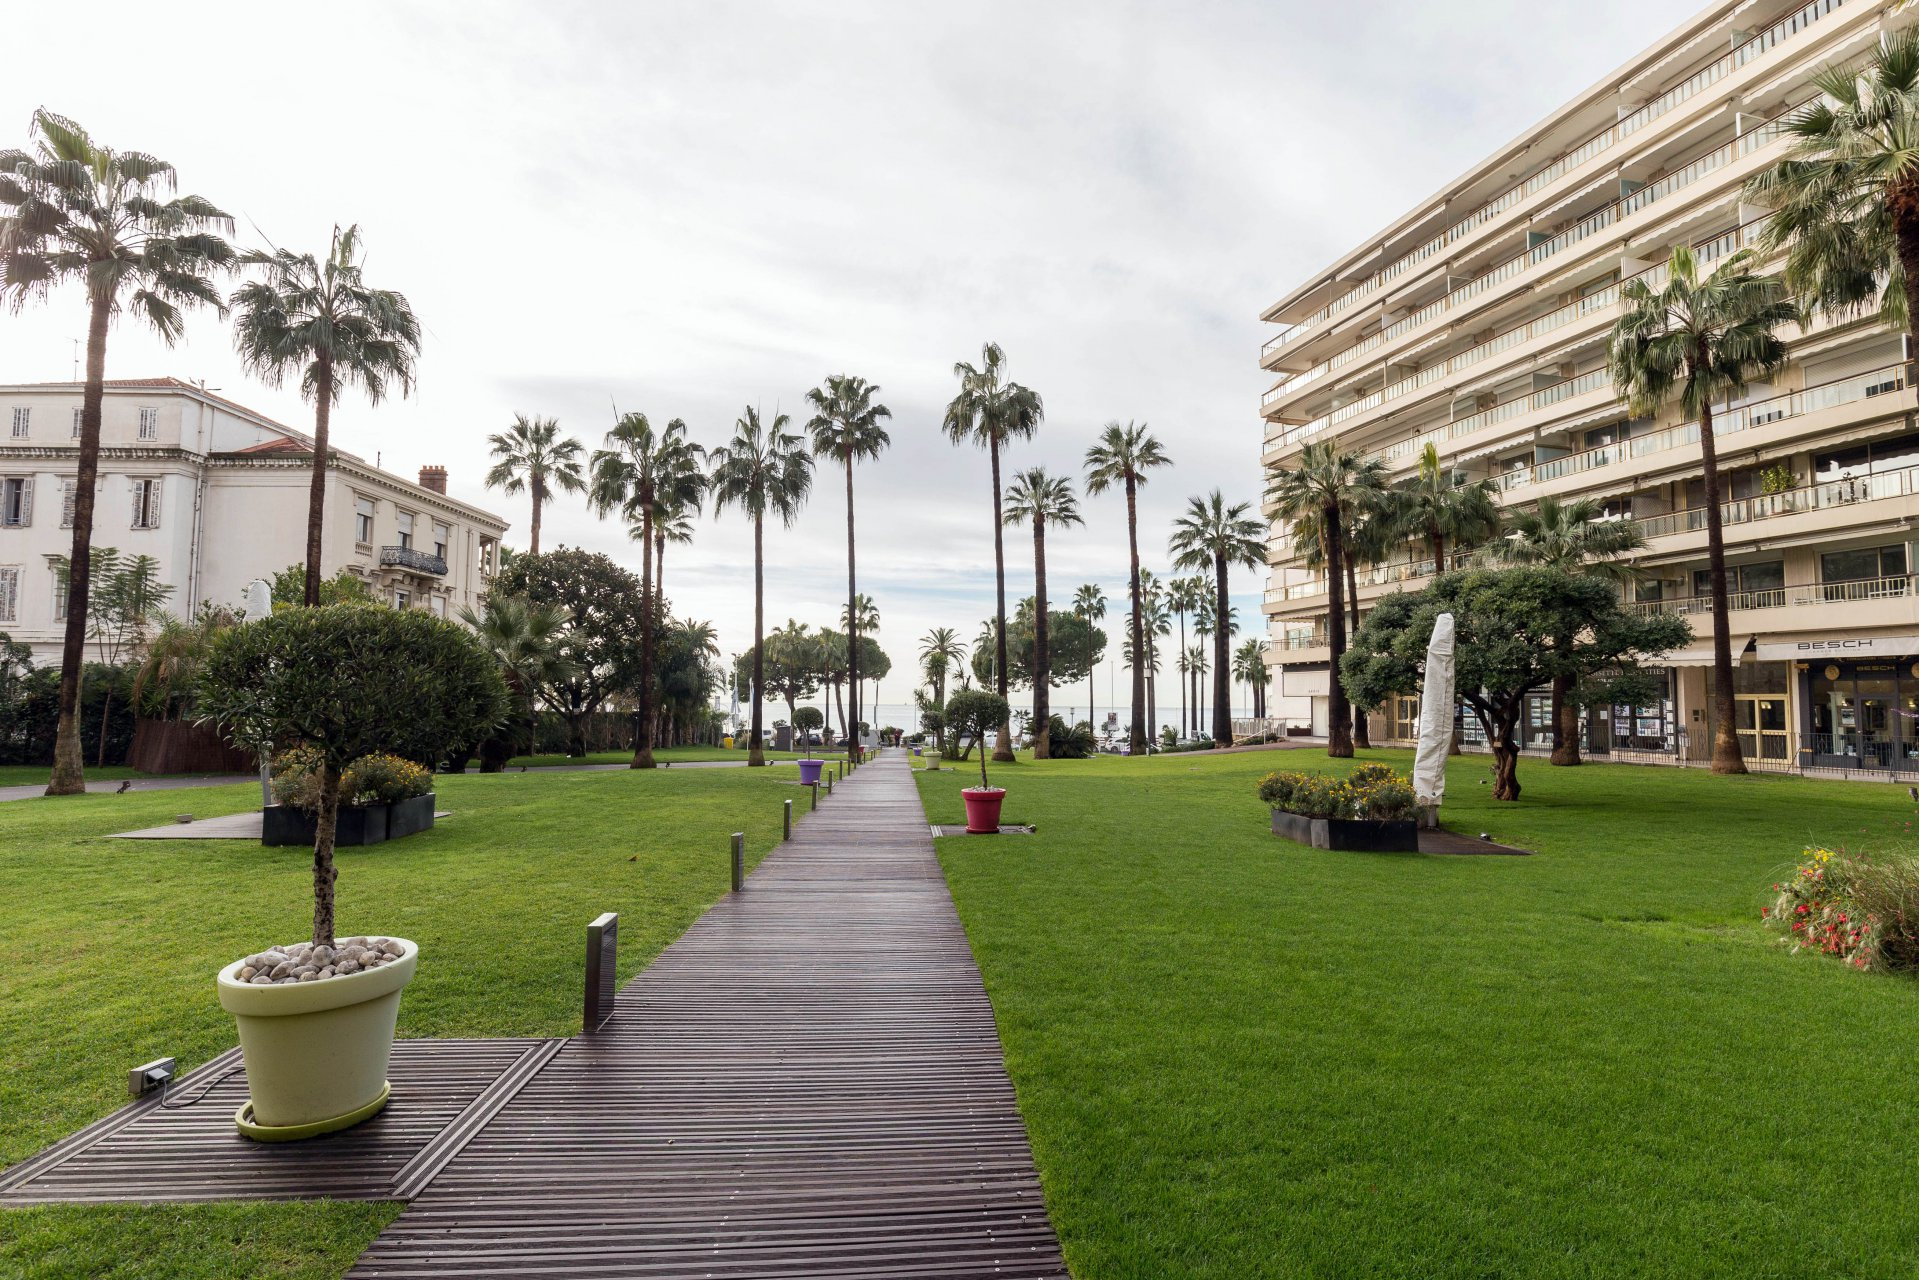 APARTMENT GRAND HOTEL CROISETTE - CANNES